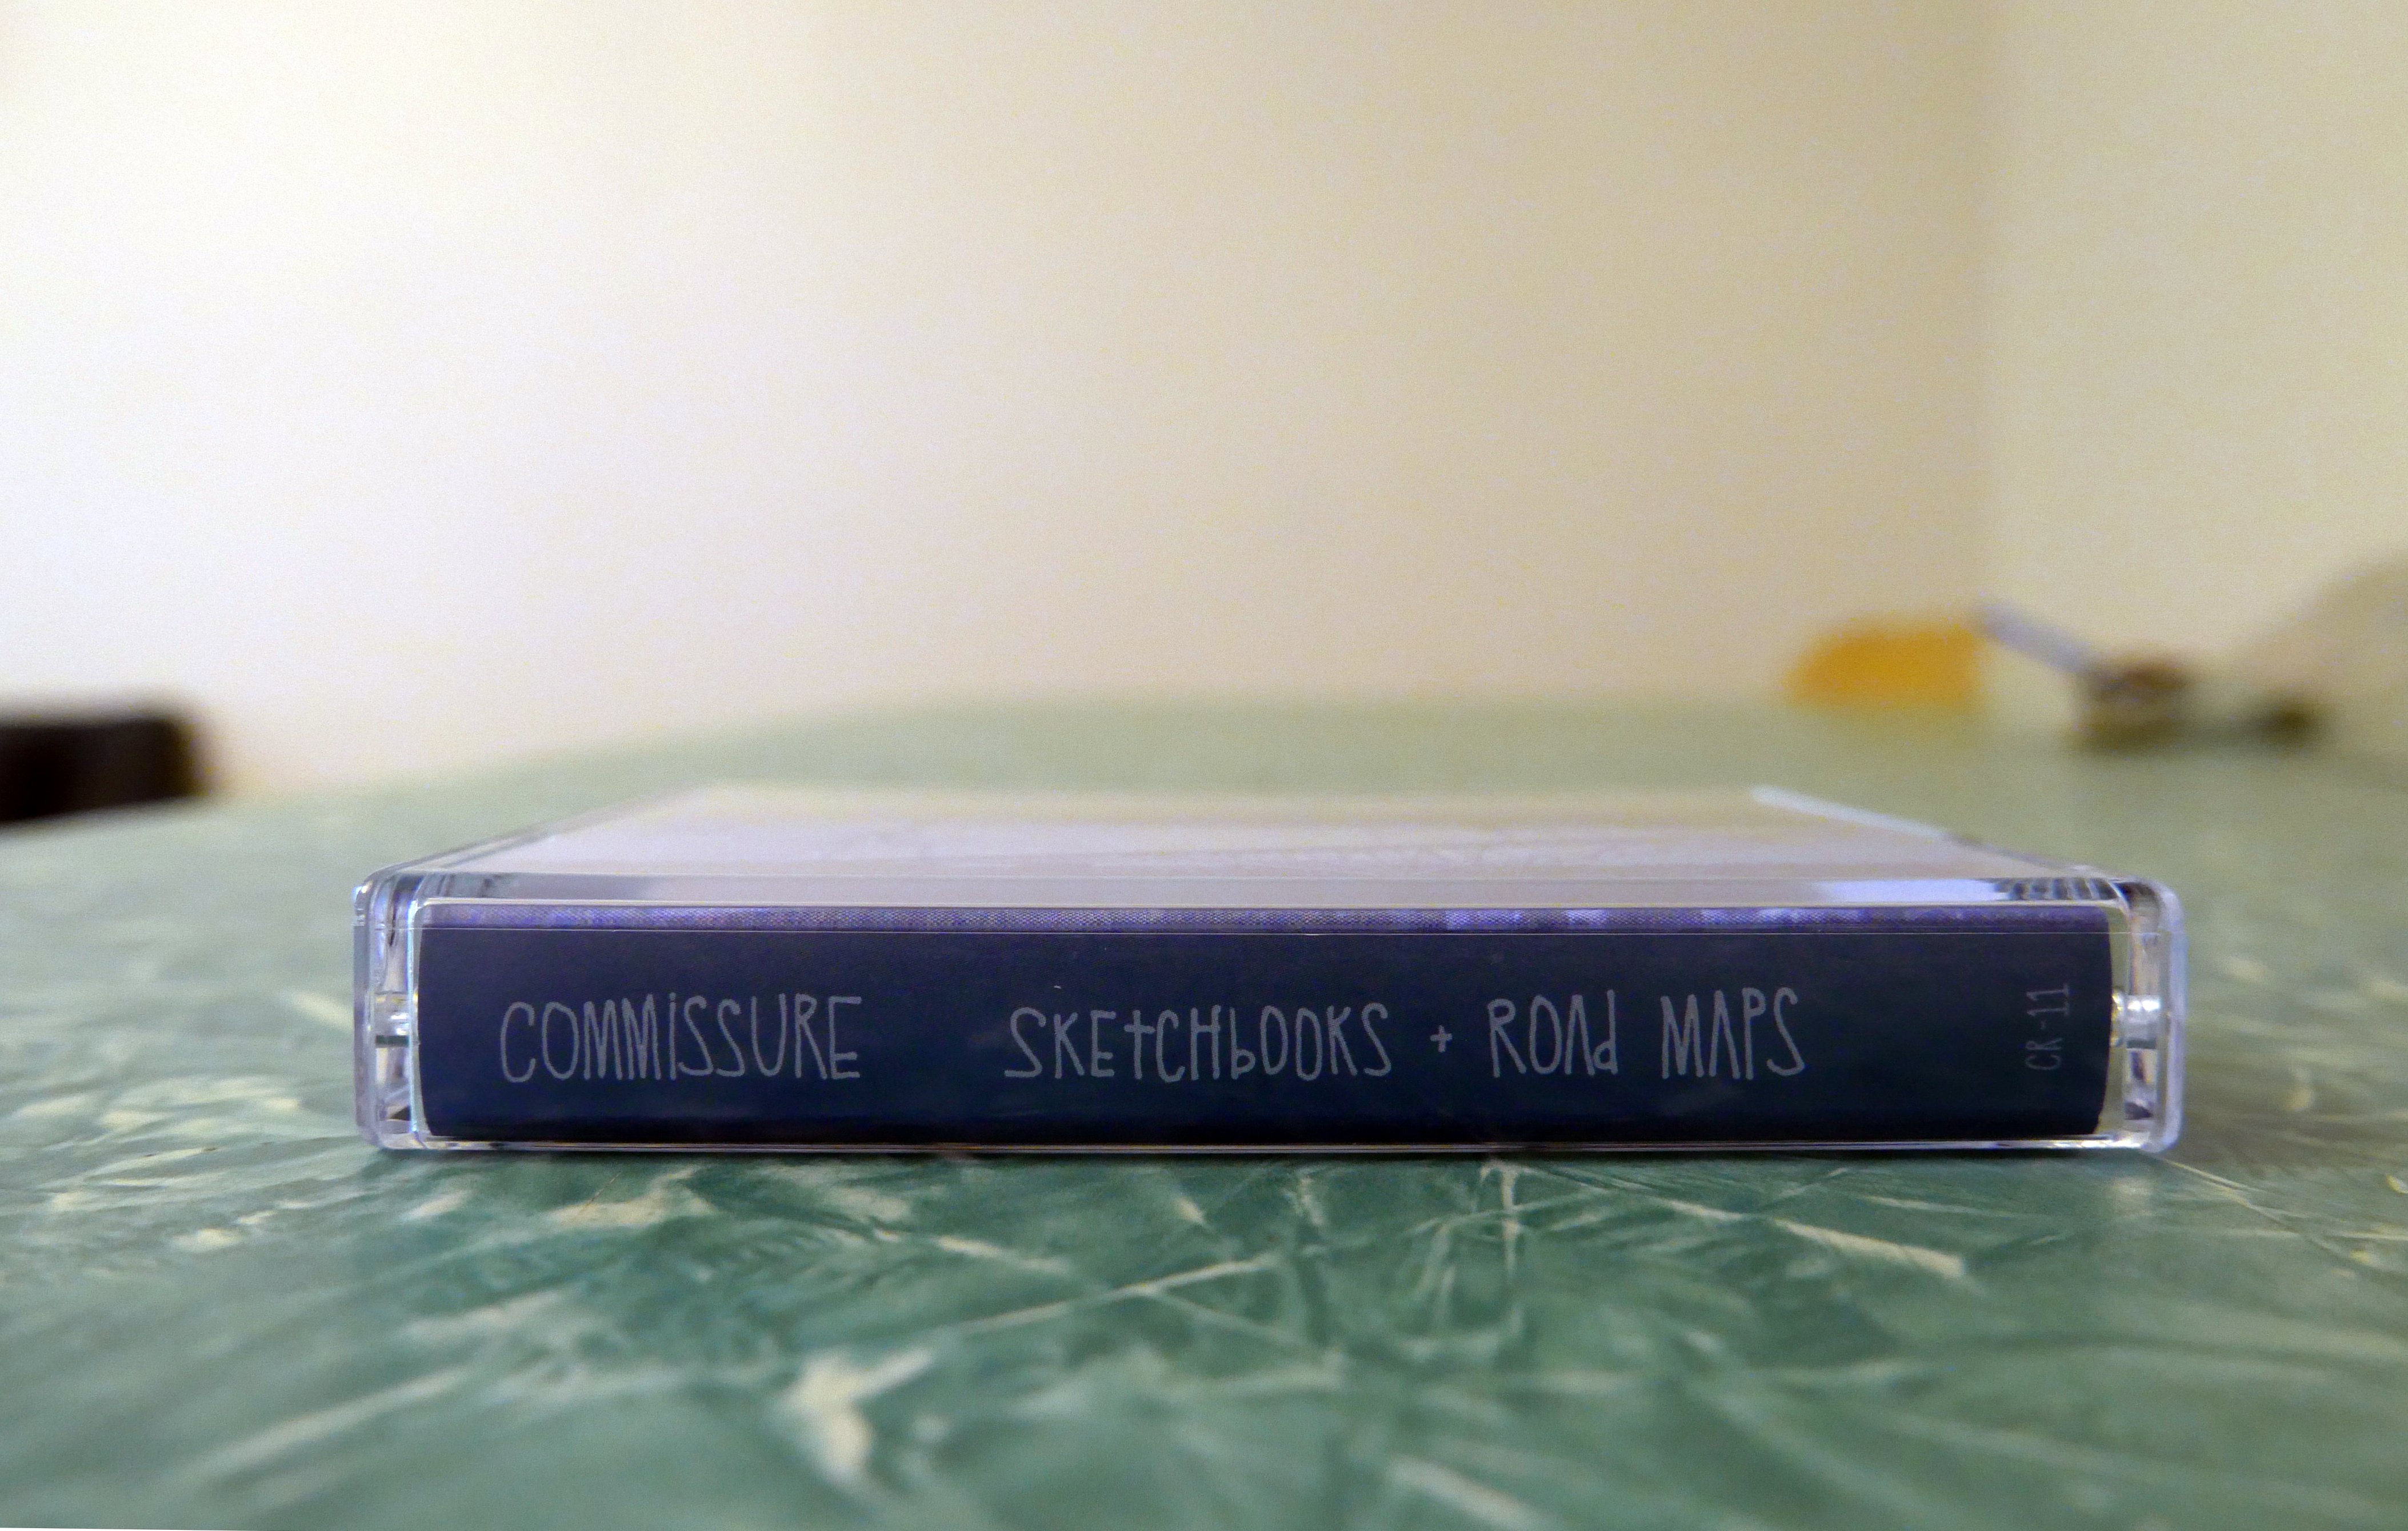 Commissure - Sketchbooks + Road Maps CS